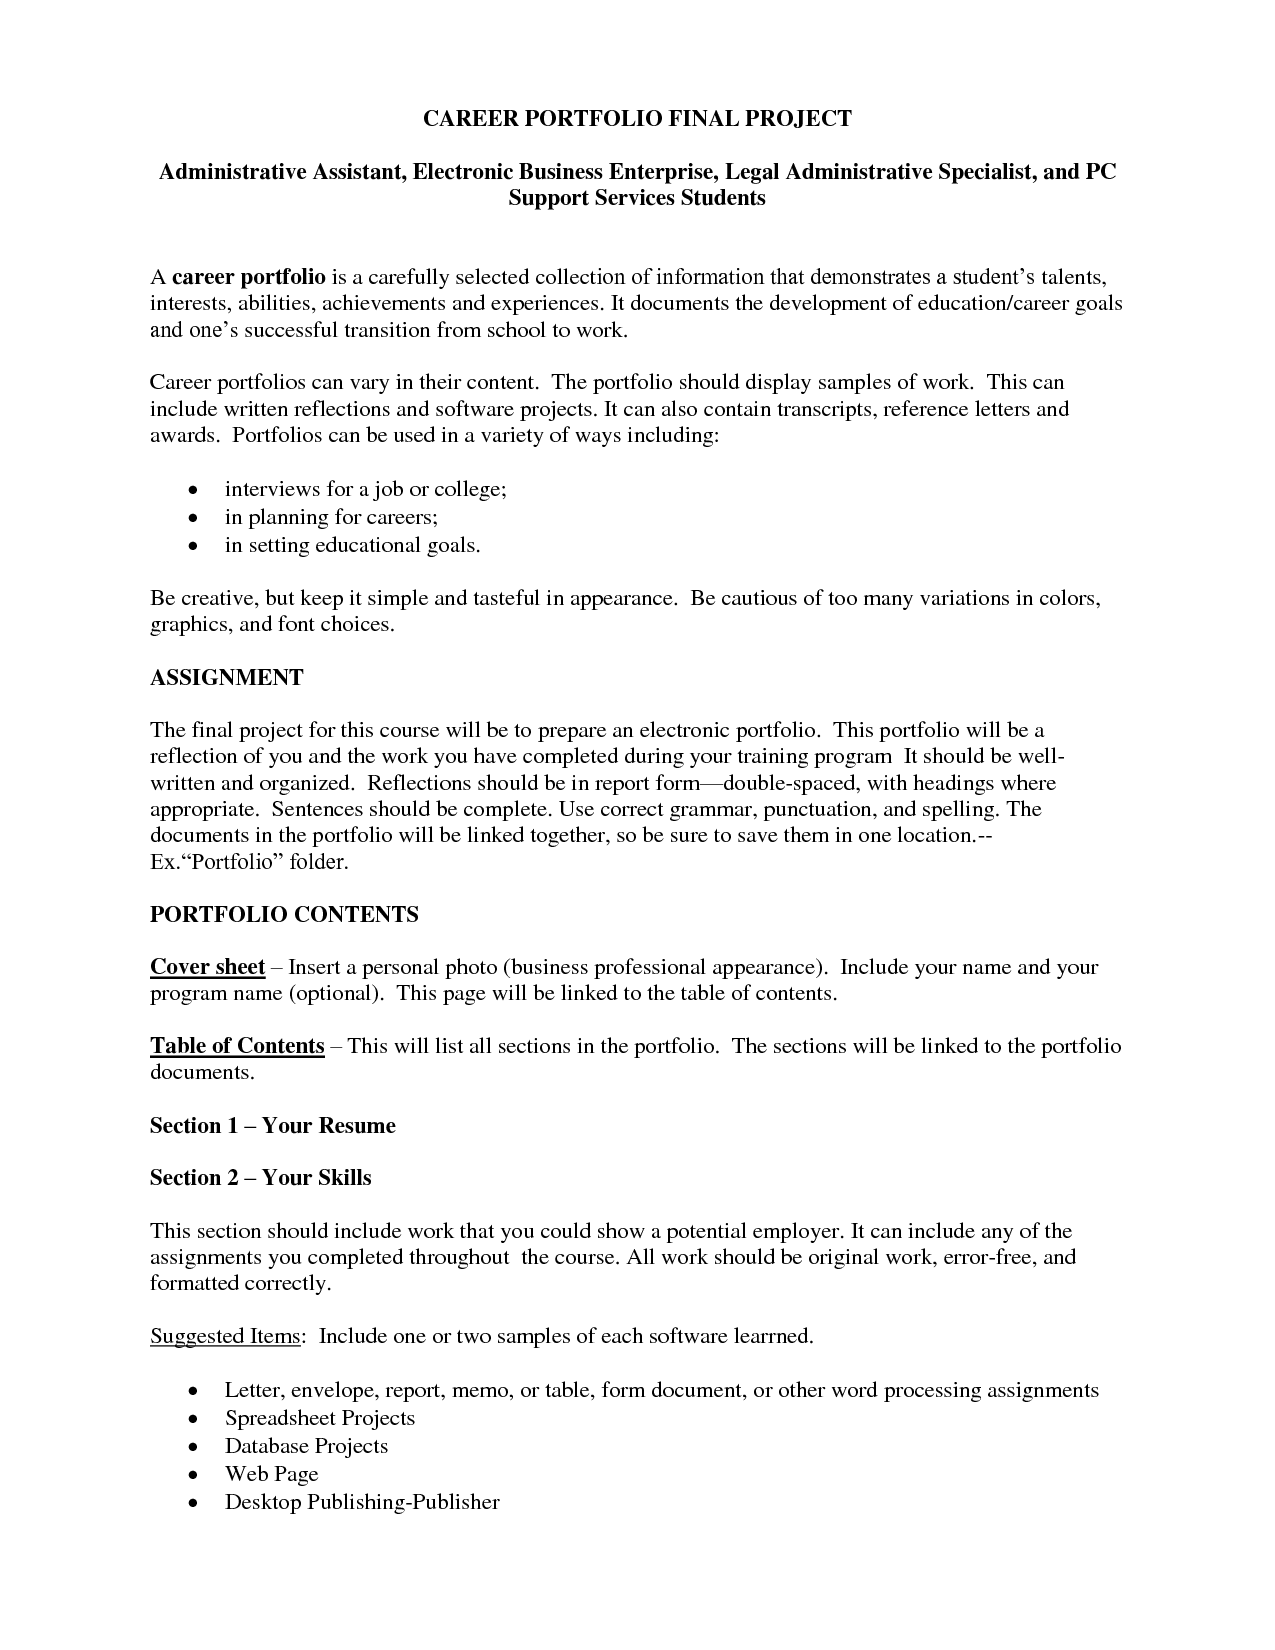 Office Administration Resume Examples Pin By Nichole Shaw On Legal Administrative Assistant